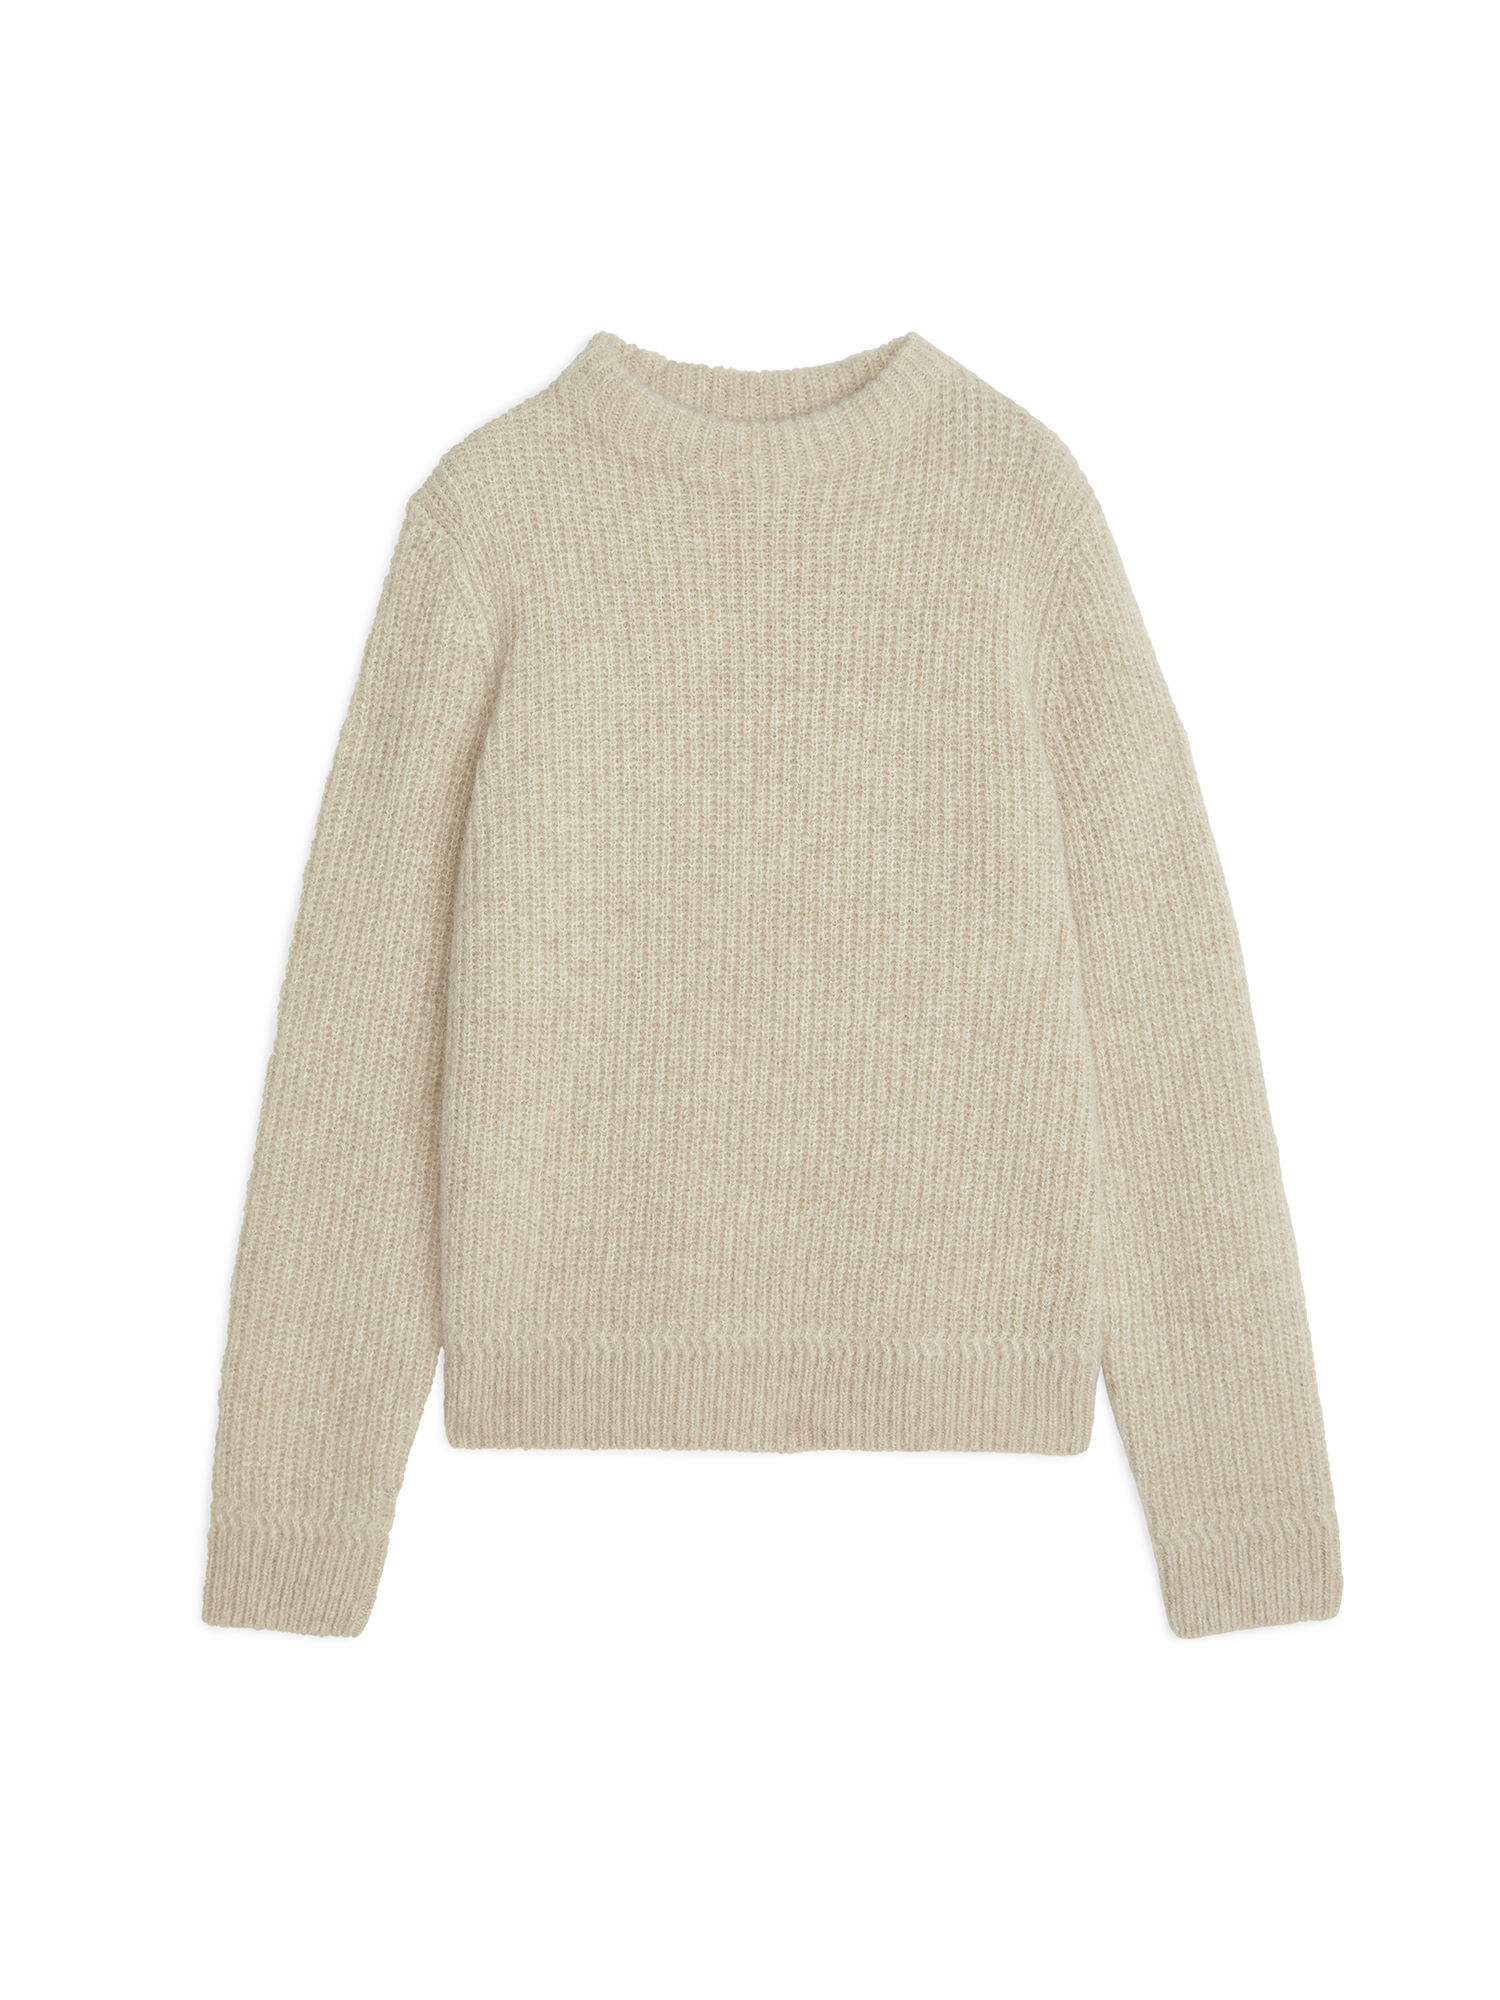 Fabric Swatch image of Arket crew-neck fisherman jumper in white